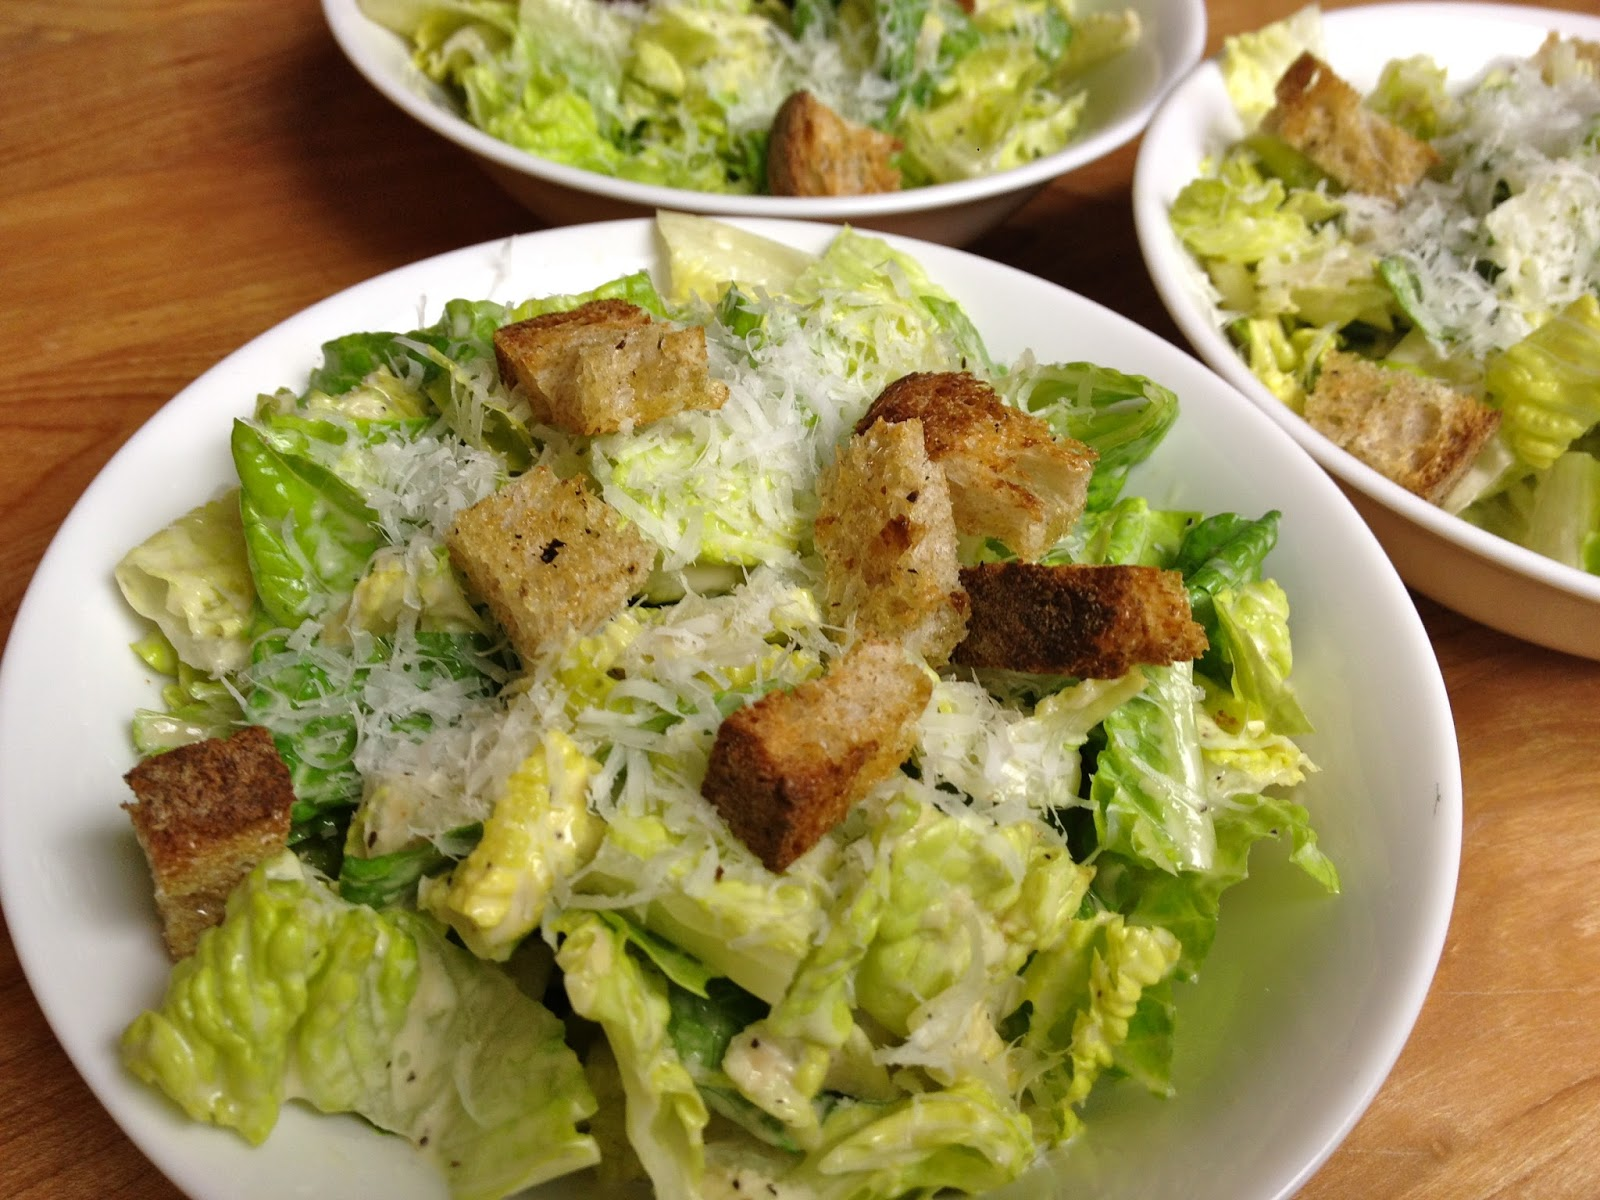 What Restaurants Have Good Caesar Salad